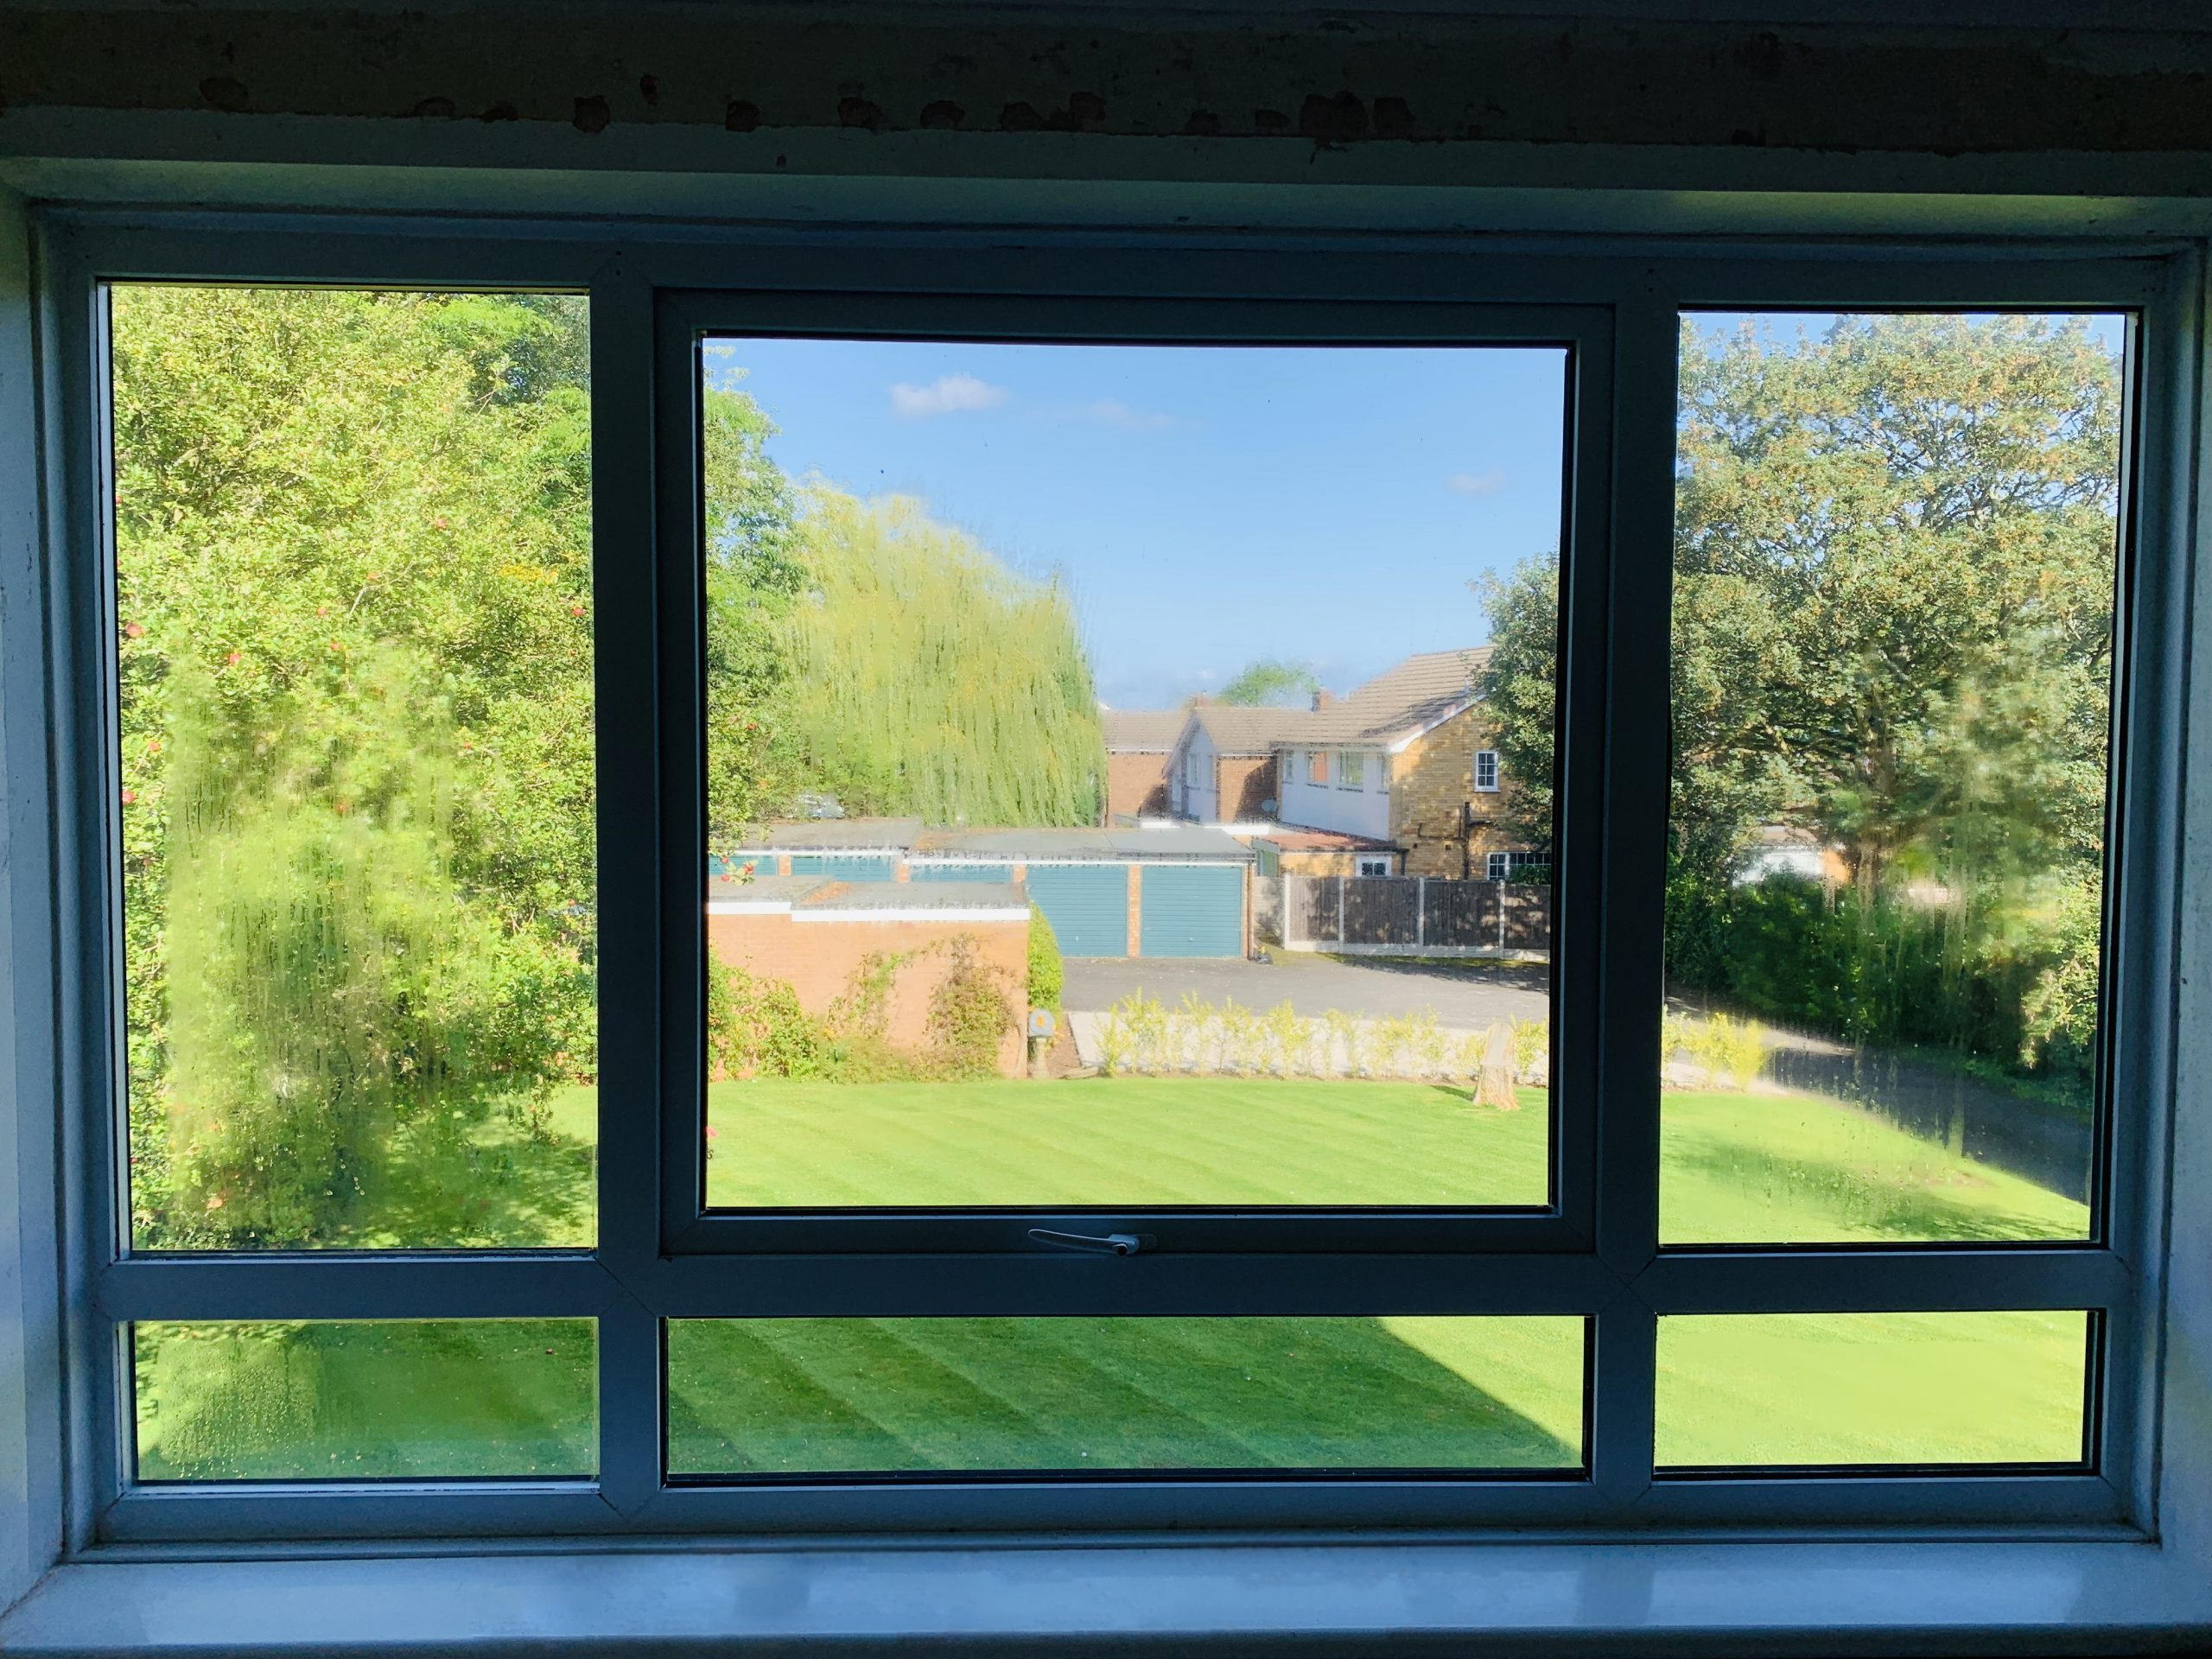 cloudy window replacement tamworth